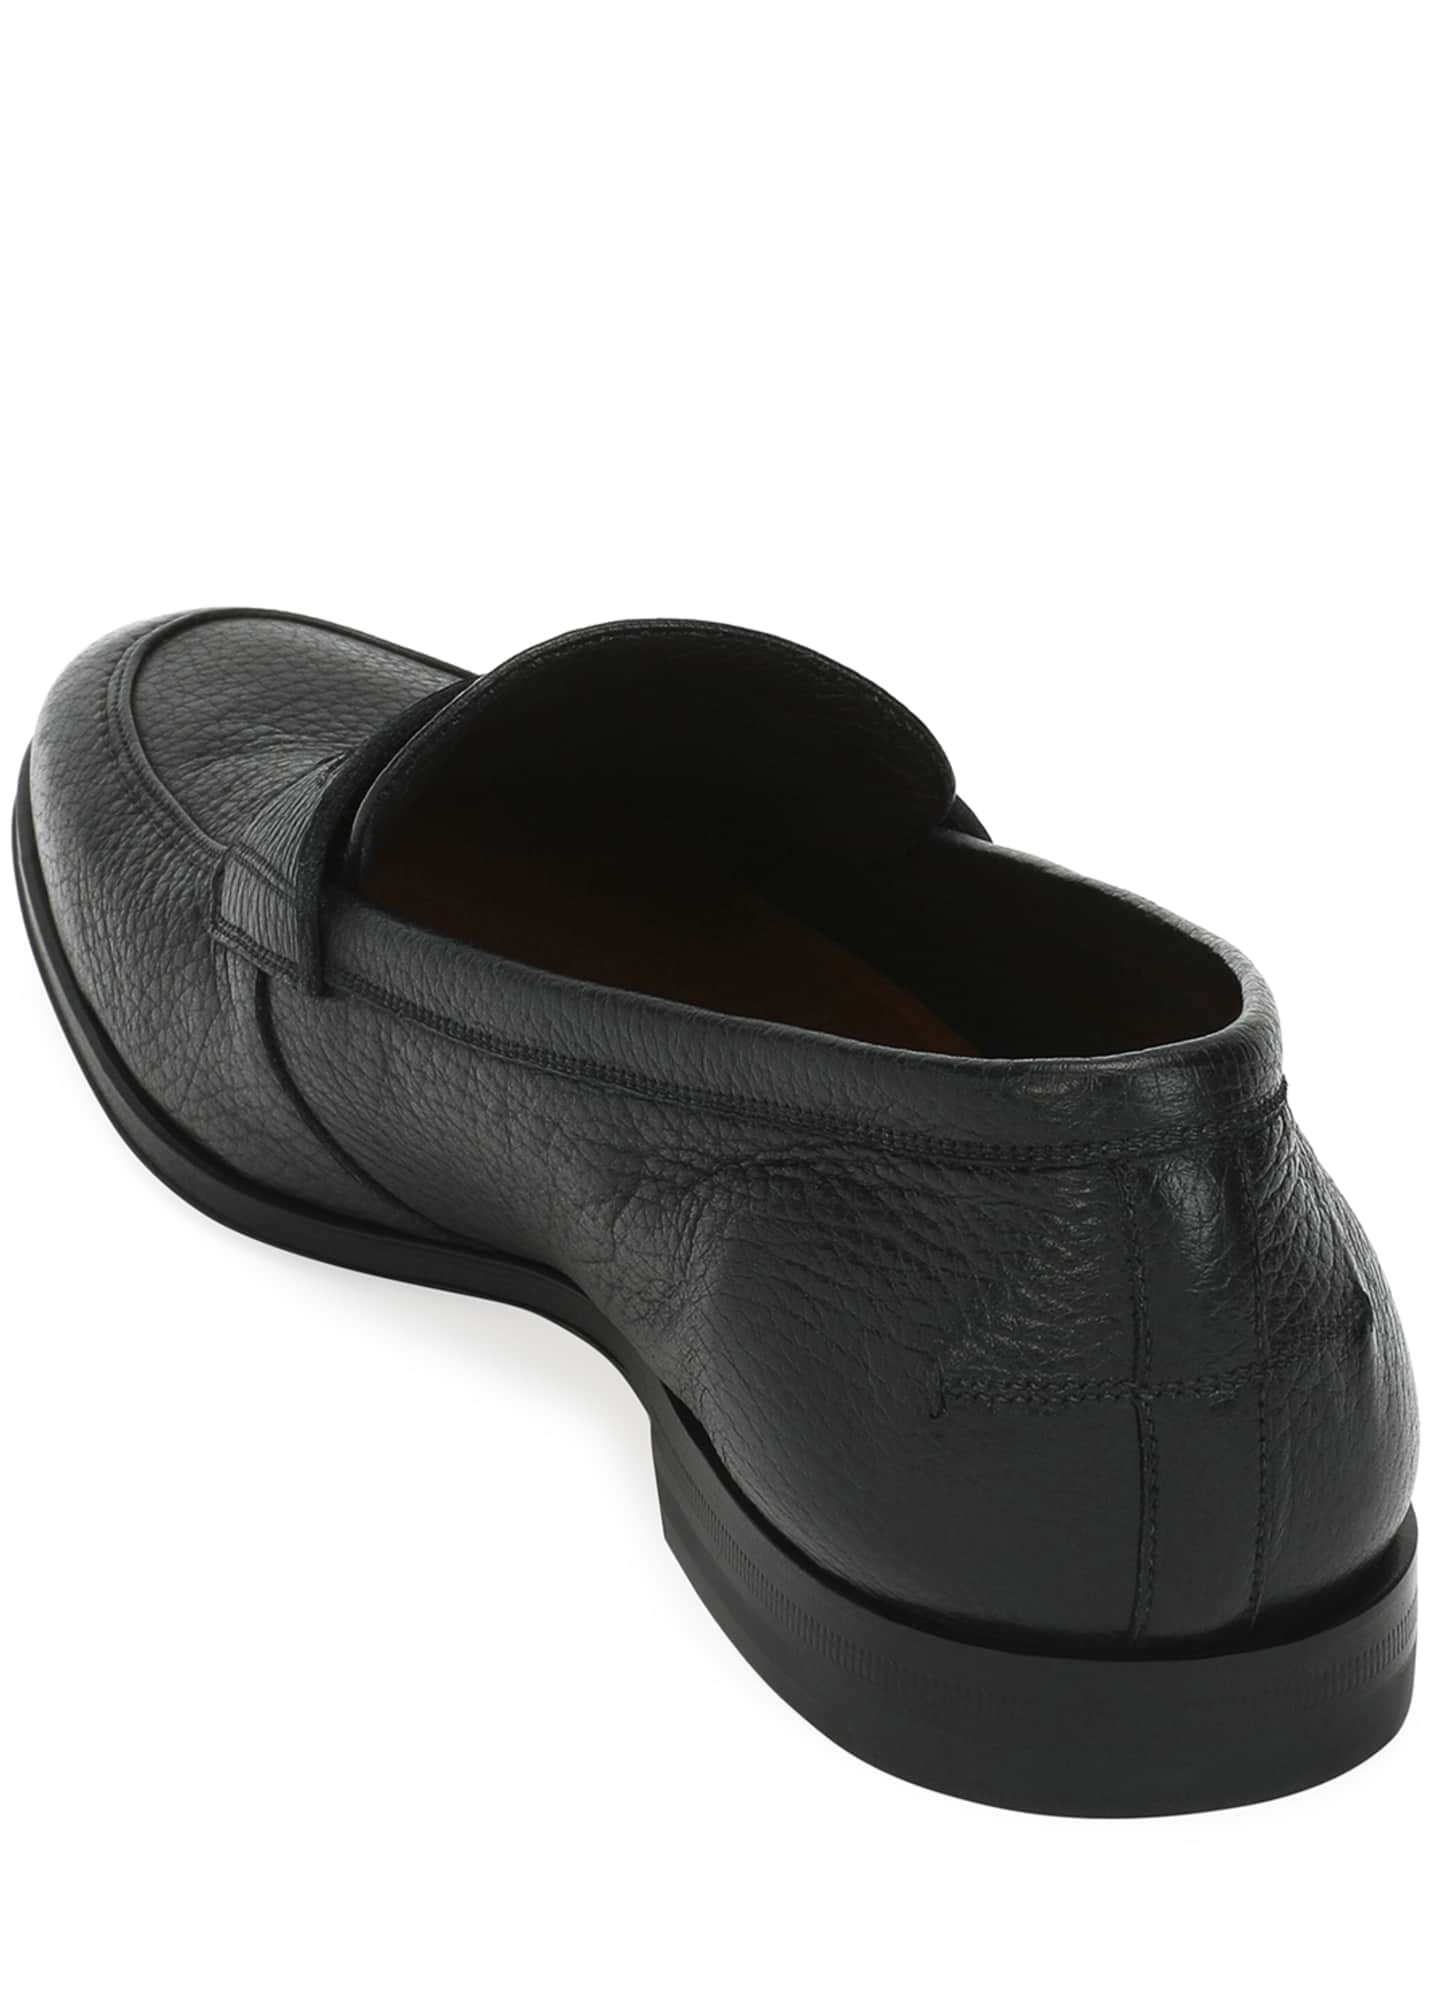 Image 3 of 3: Webb Leather Penny Loafer